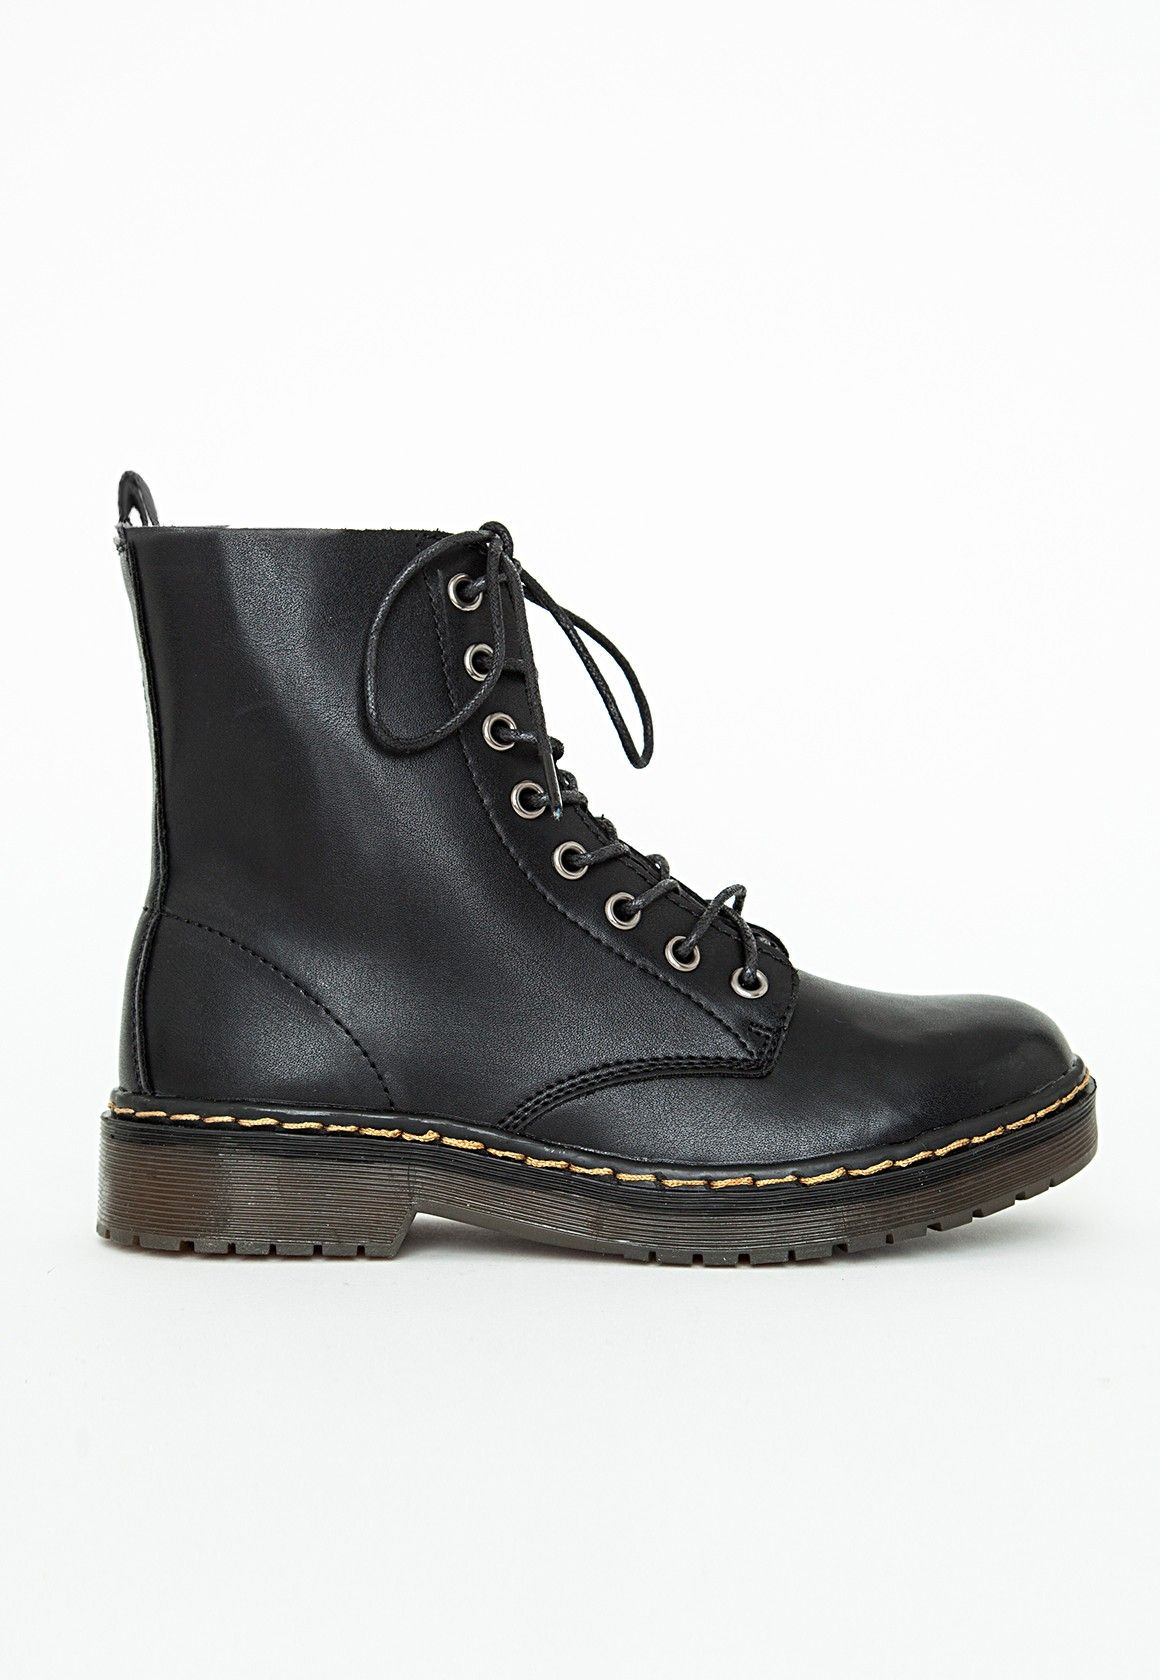 Missguided - Lace Up Rubber Sole Boots